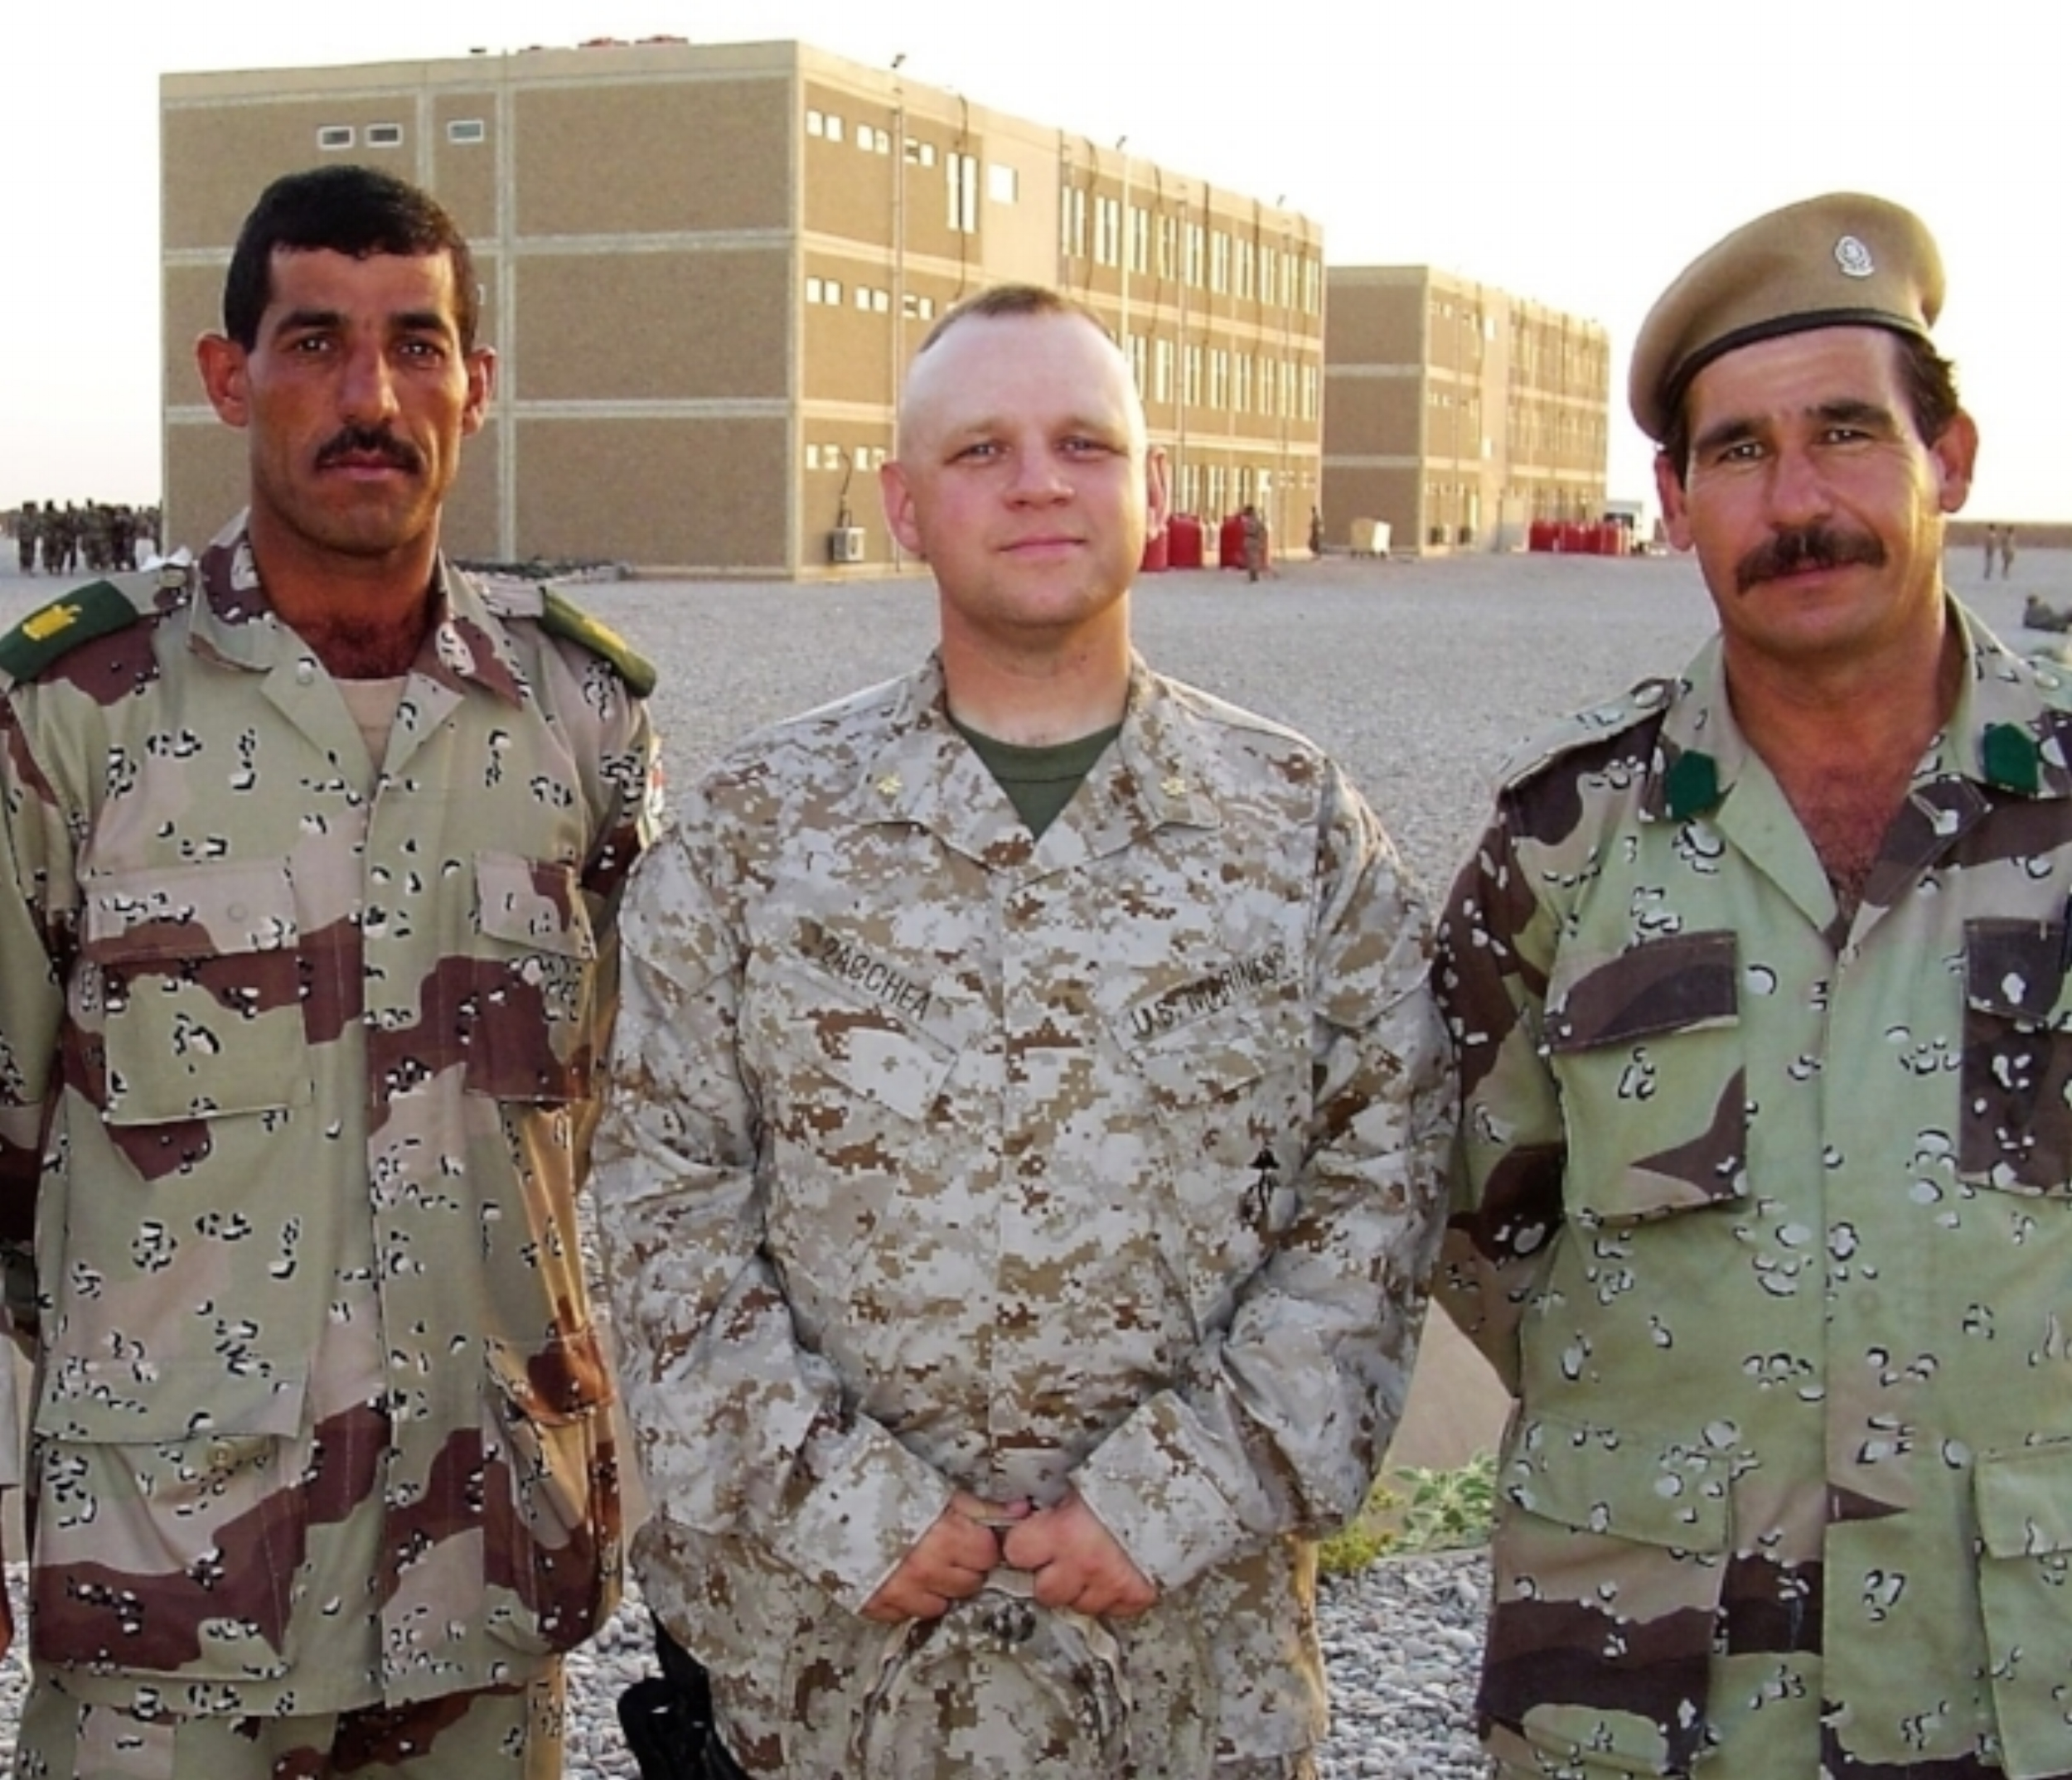 Zayn al-Jibouri, Michael Zacchea and Abdel-ridha Gibrael. An Arab, an American and a Kurd with a shared mission in the most dangerous place on earth.